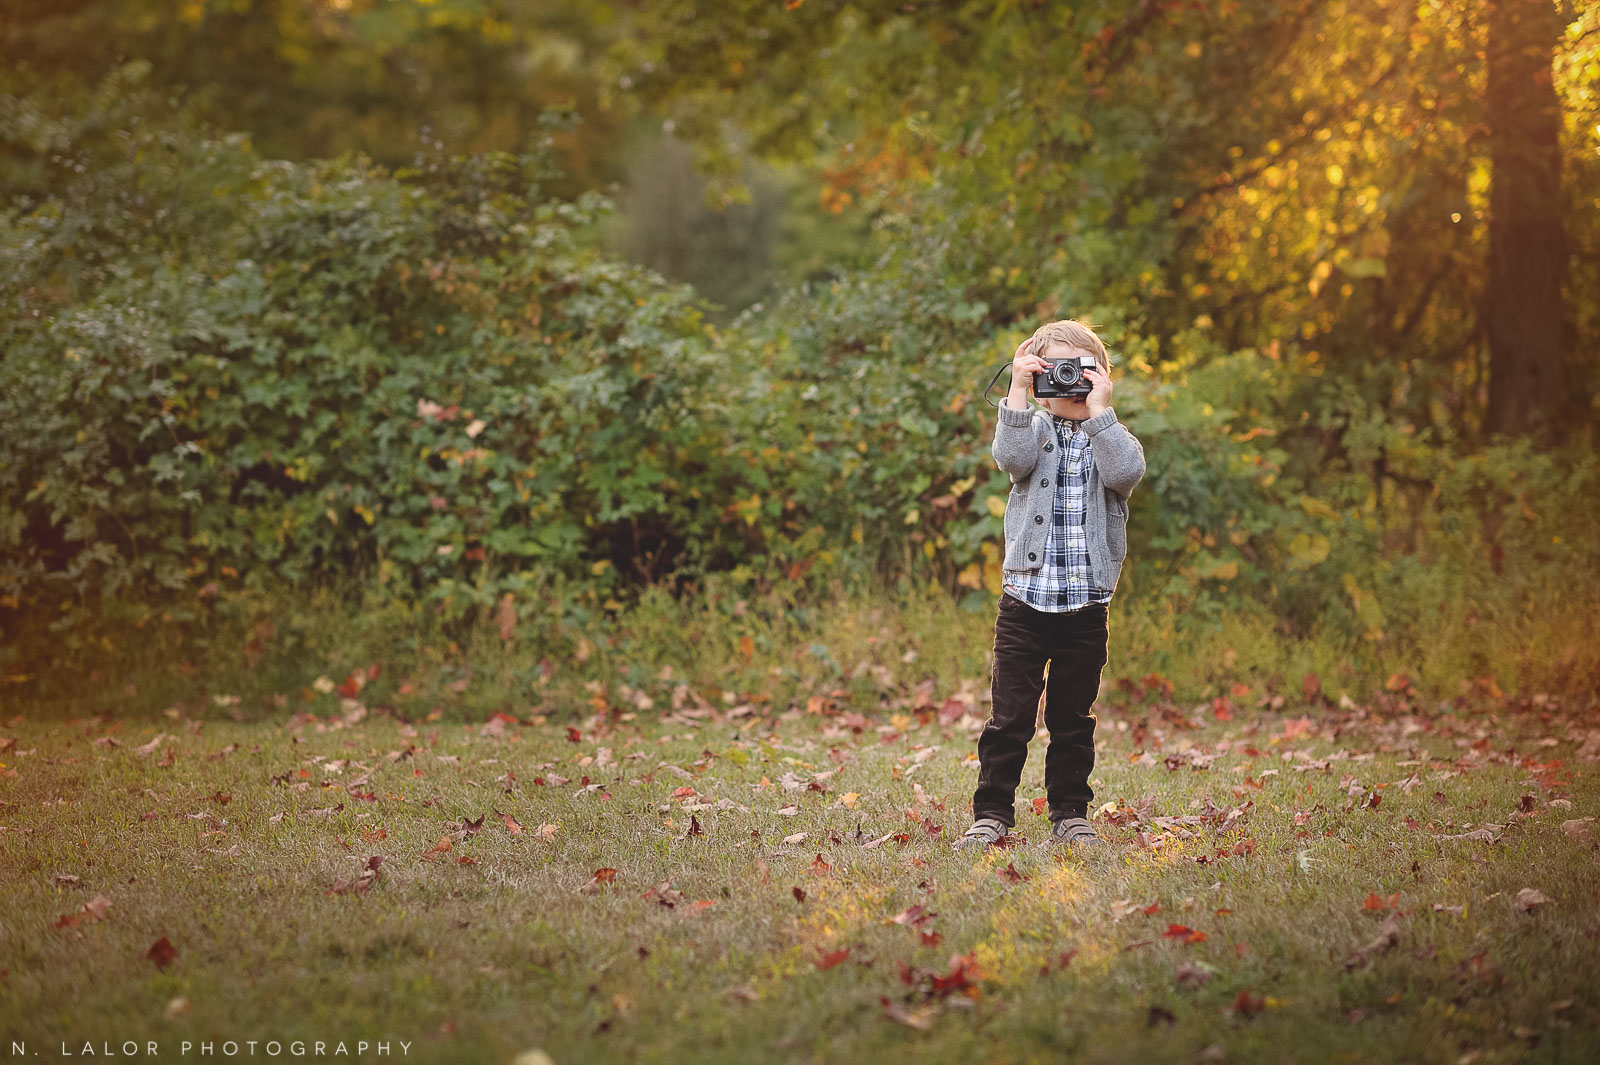 nlalor-photography-boy-fall-new-canaan-nature-center-photo-session-1.jpg